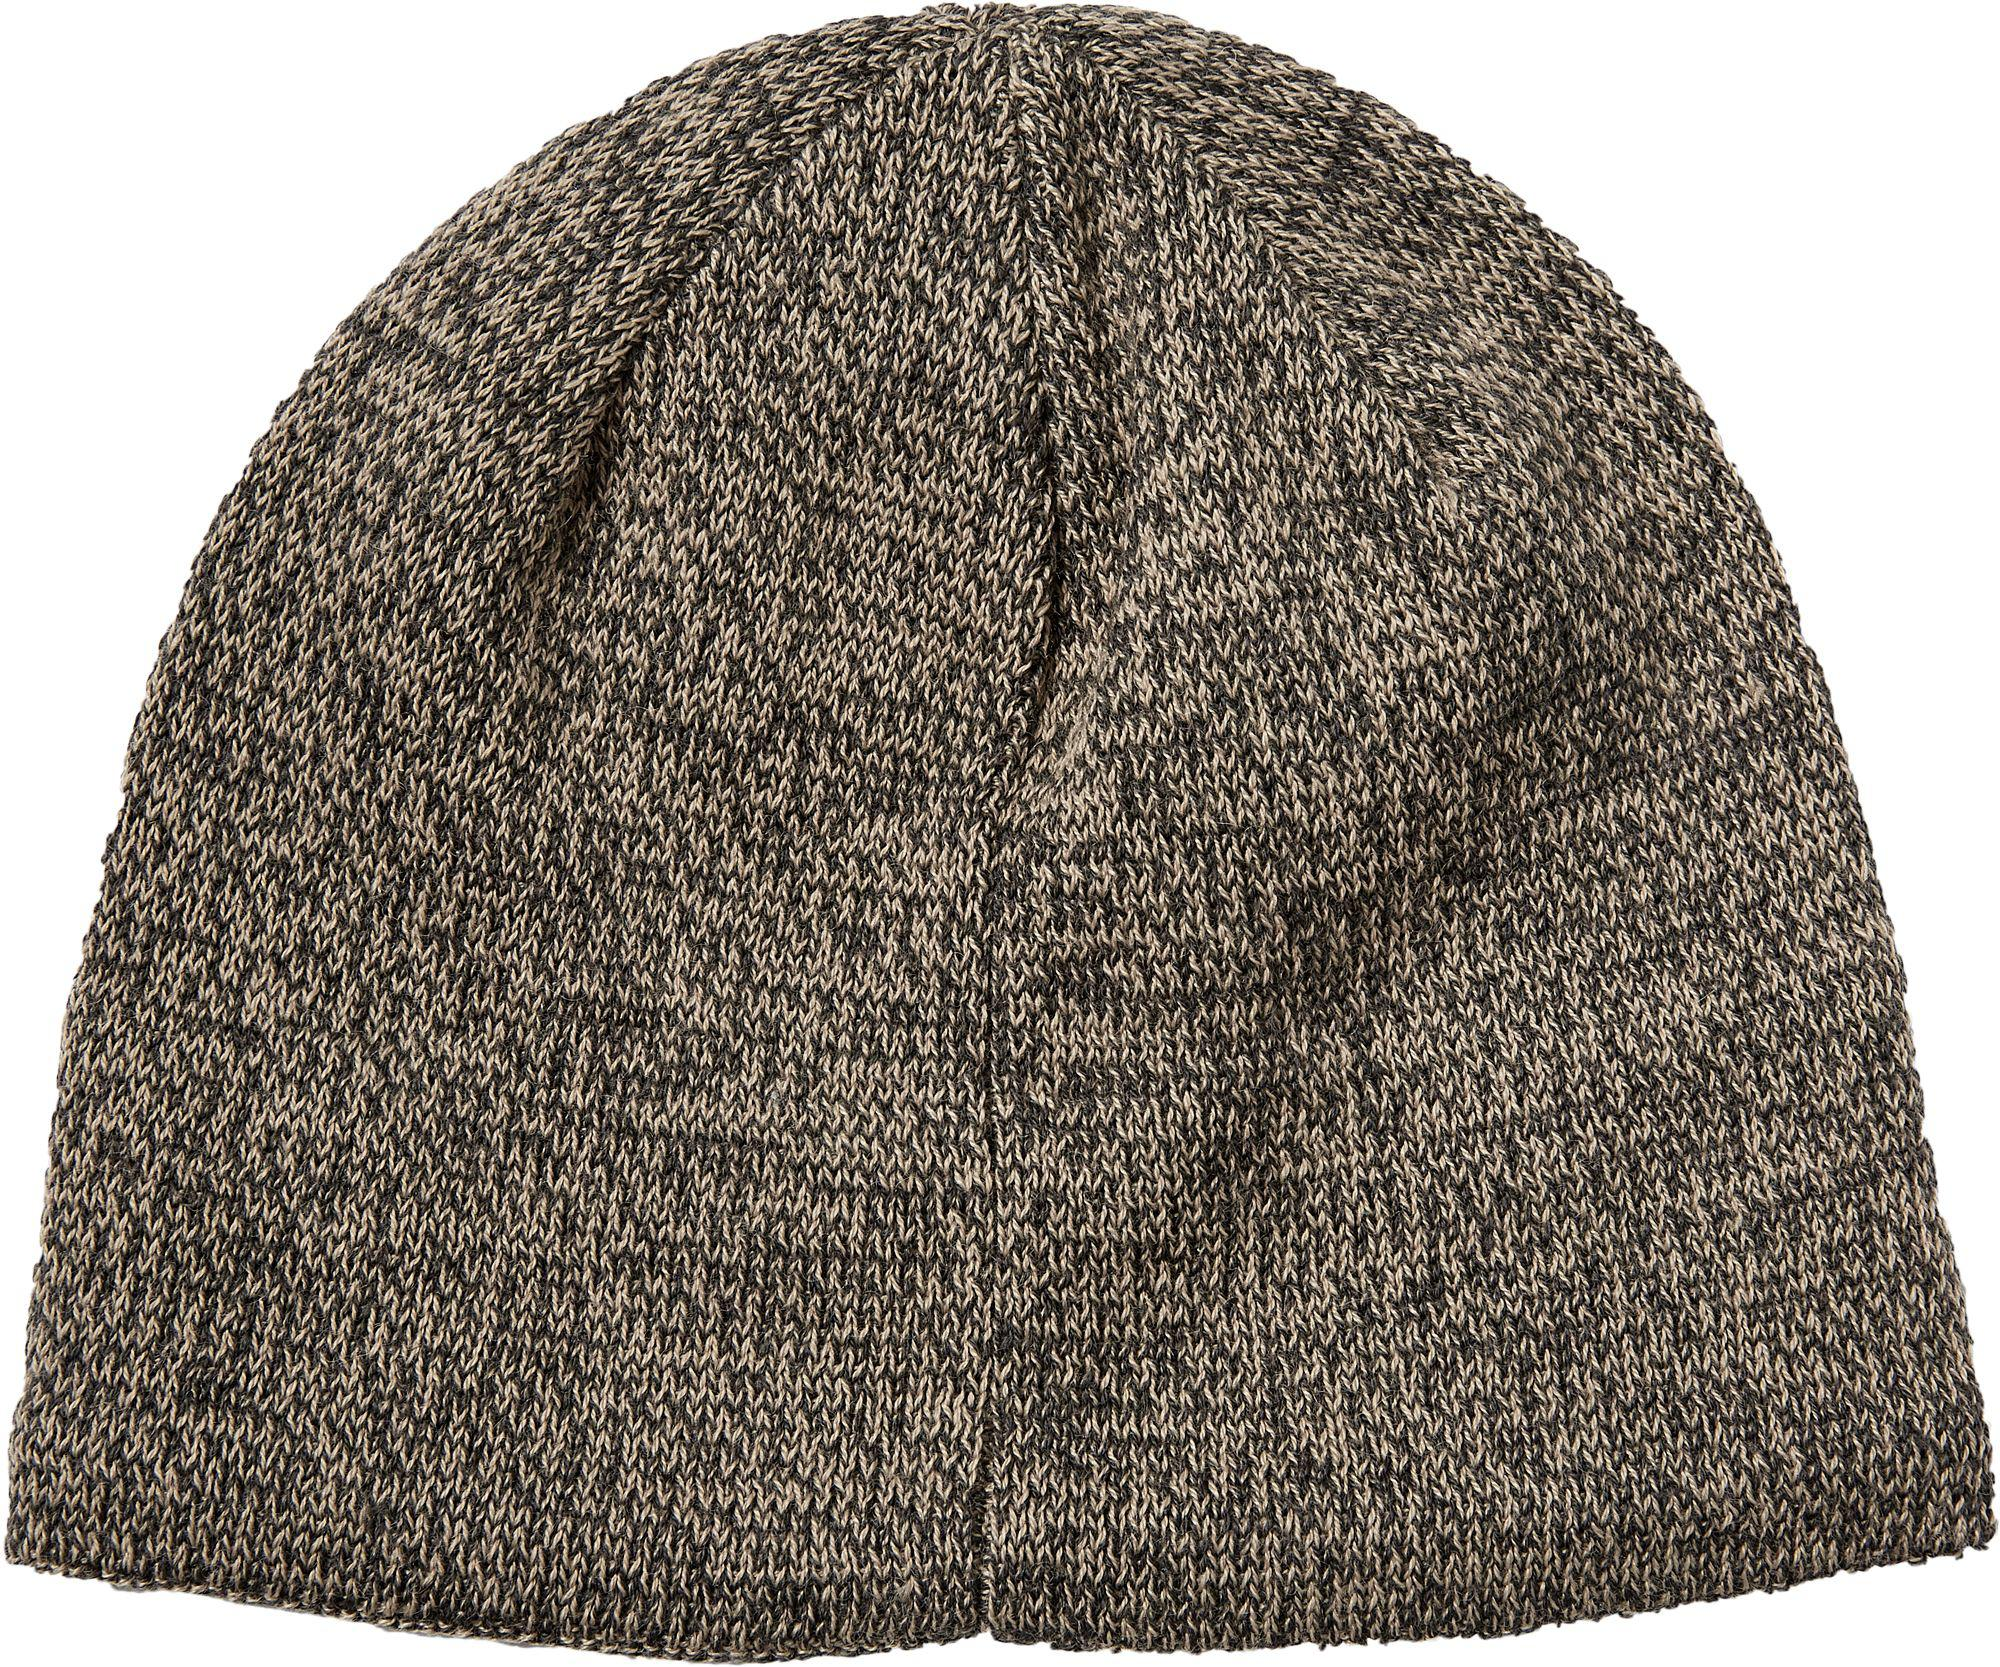 1bf3c1e553622 The North Face Jim Beanie in Natural for Men - Lyst